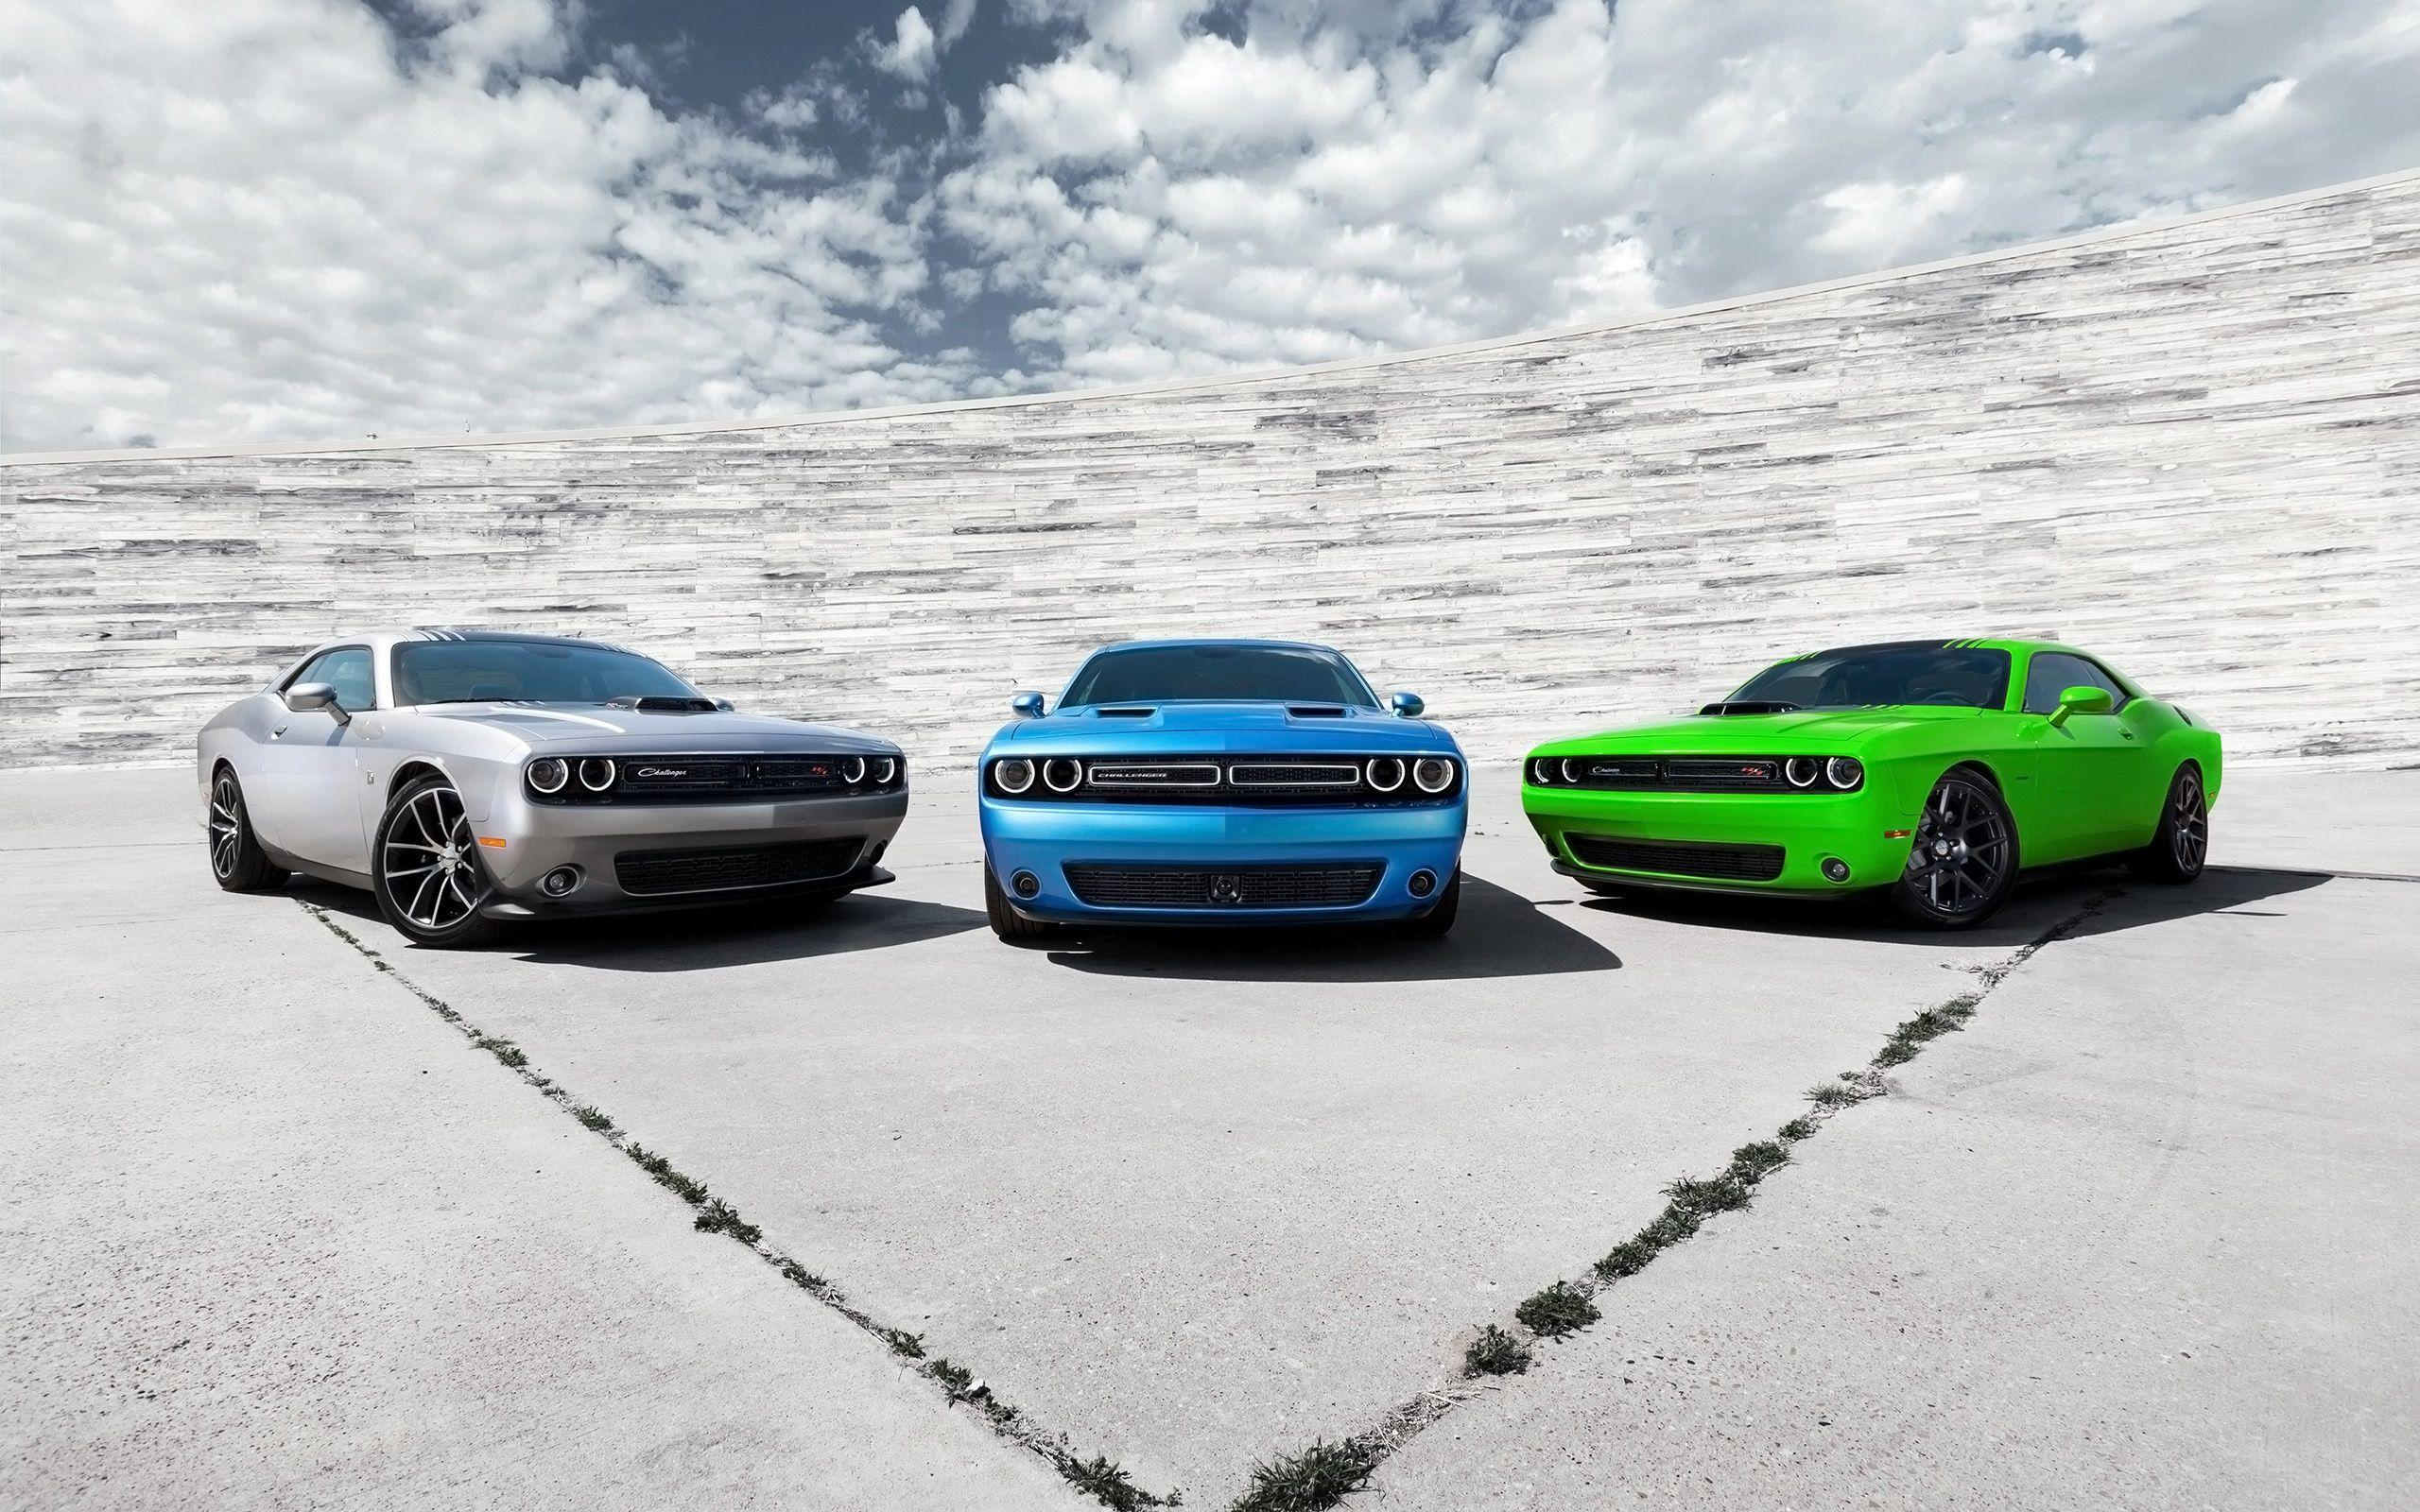 2015 Dodge Challenger Cars Wallpapers in jpg format for free download